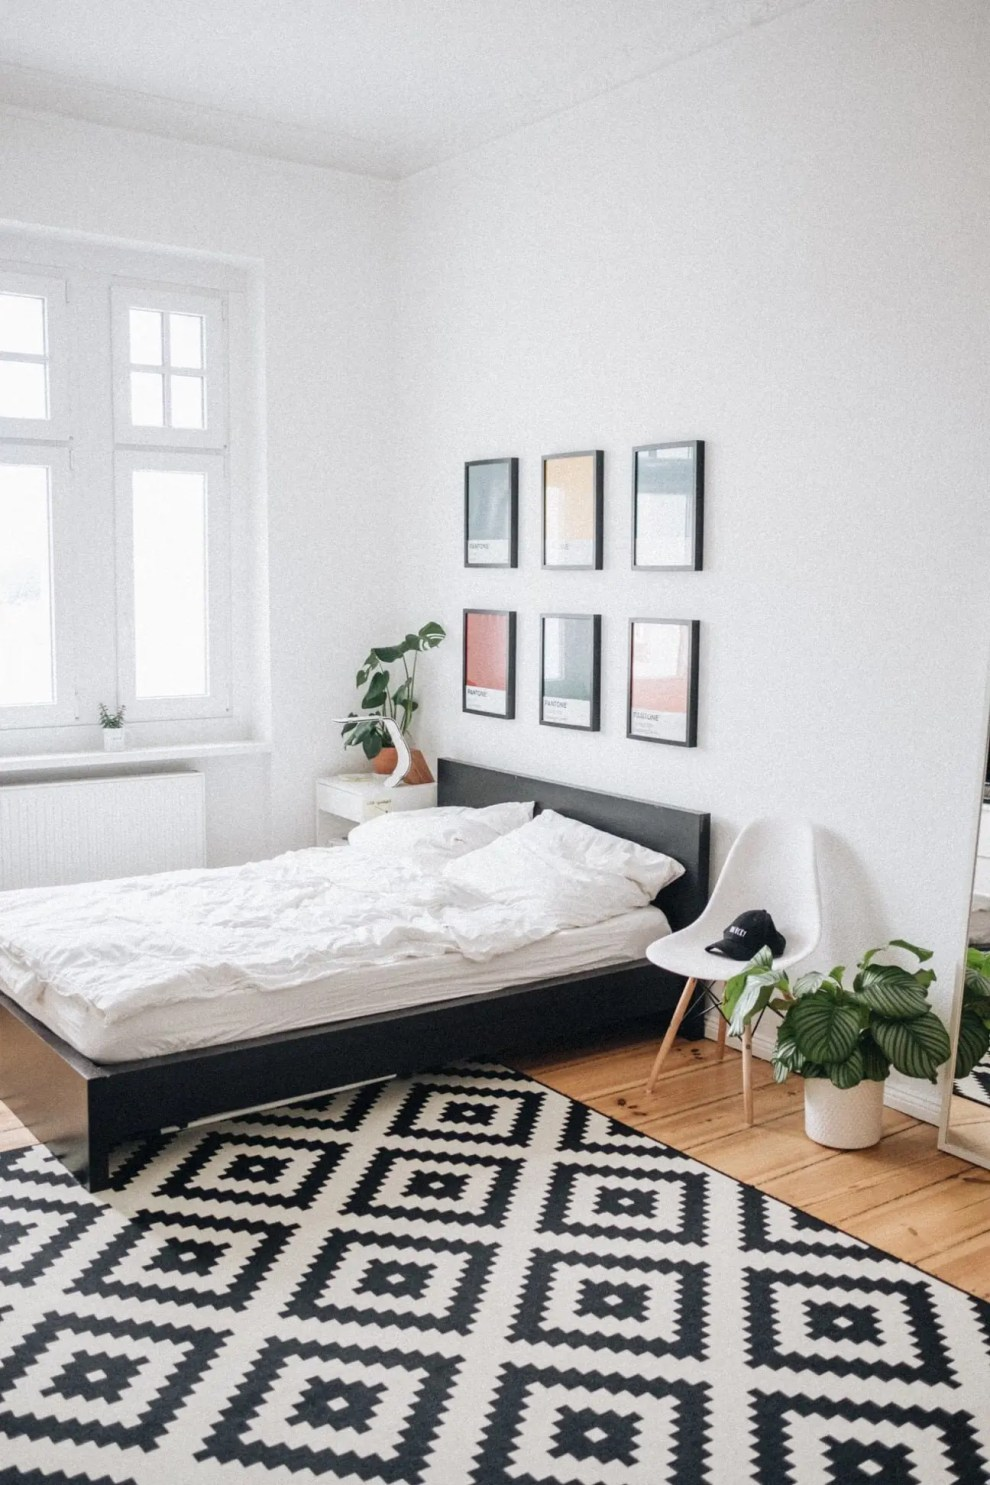 6 ways to refresh your bedroom for summer